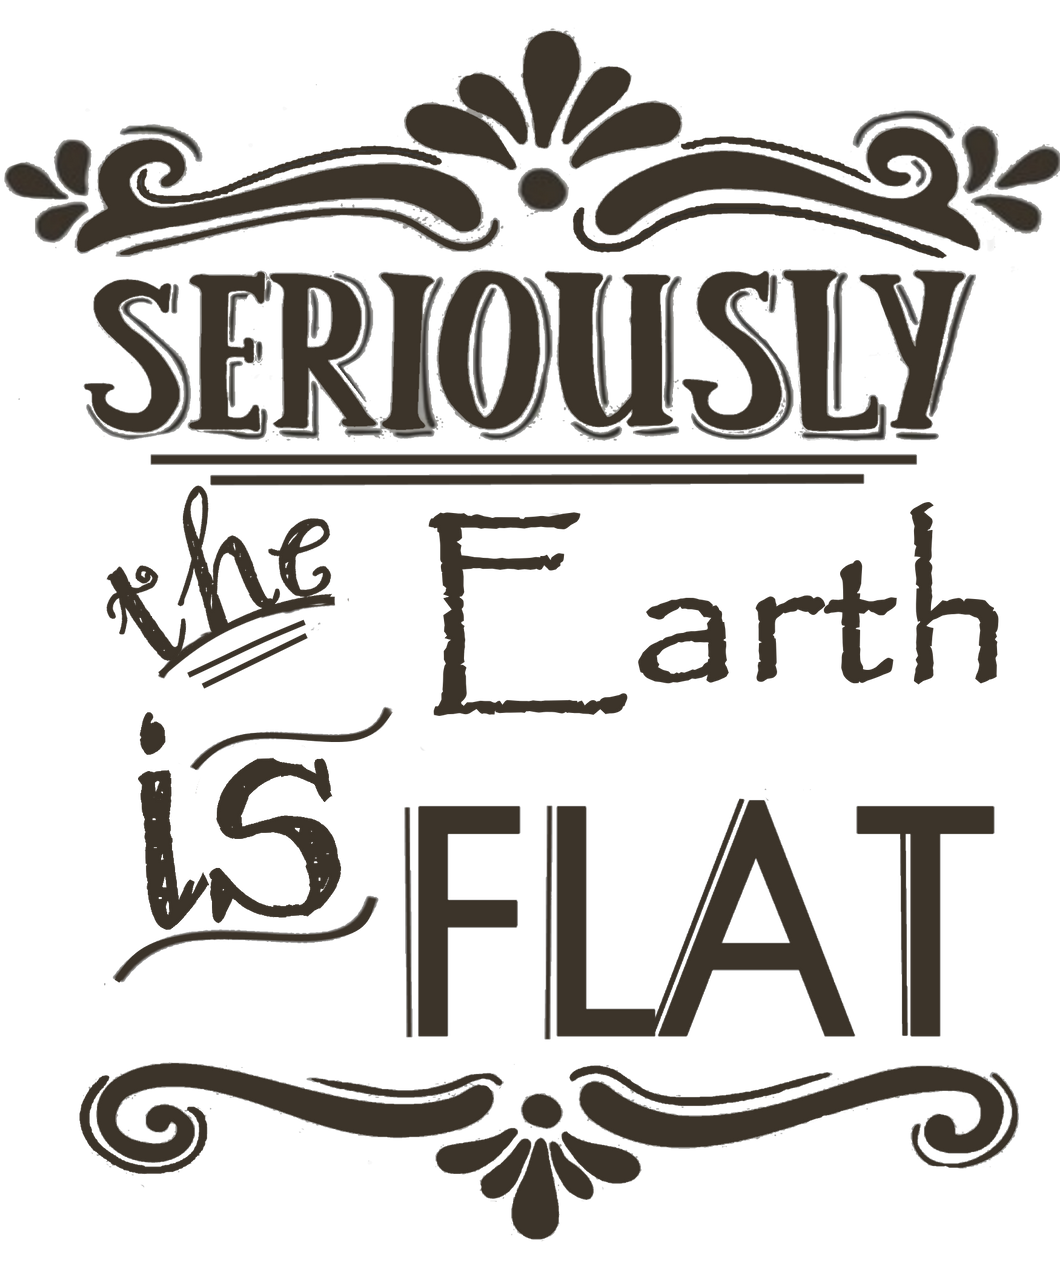 Seriously Collection- Research Flat Earth